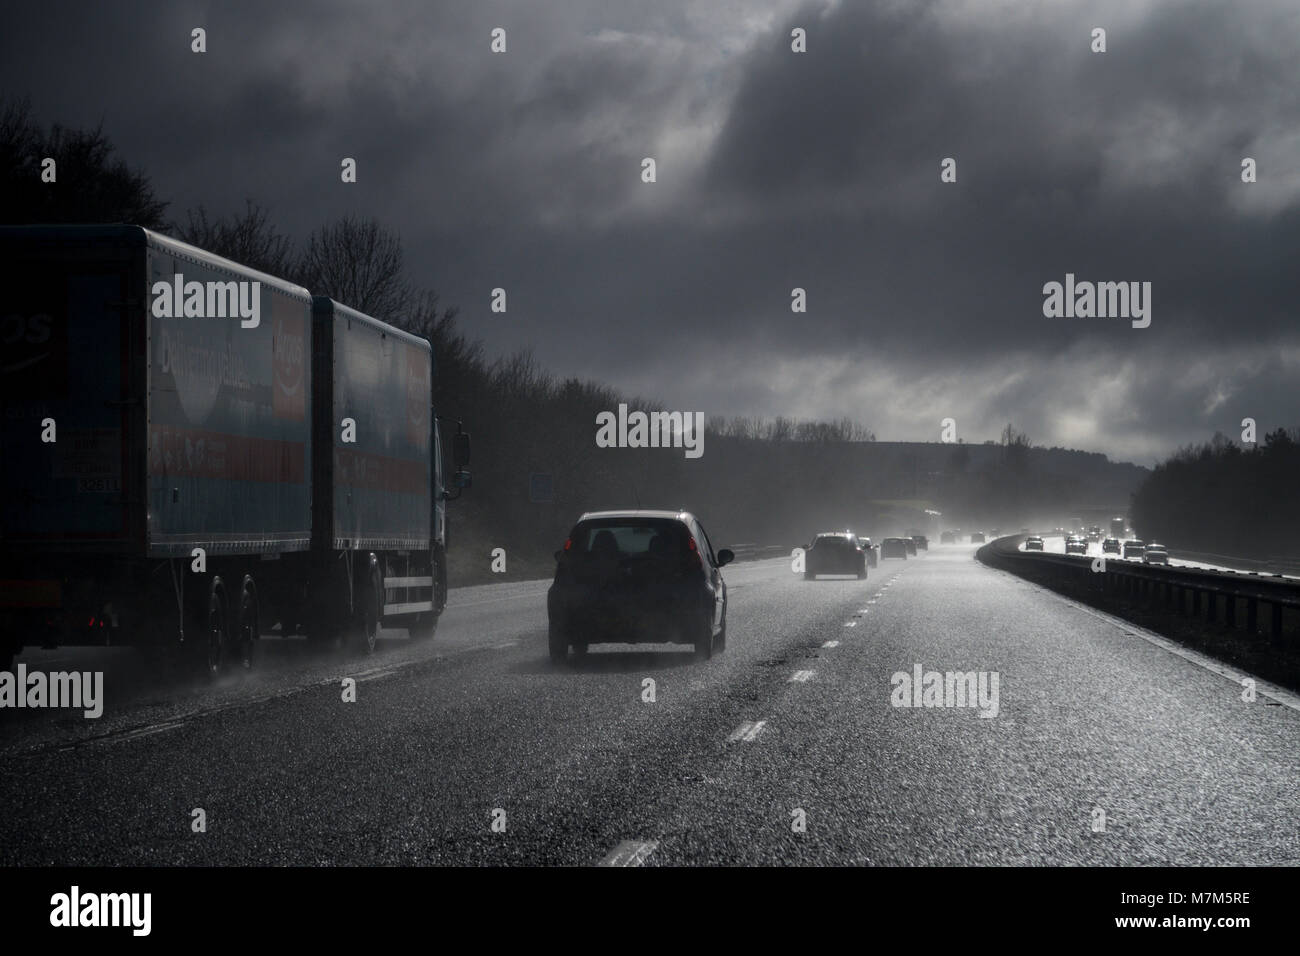 Spray from surface water on the M5 motorway creates poor visibility and dangerous driving conditions - Stock Image